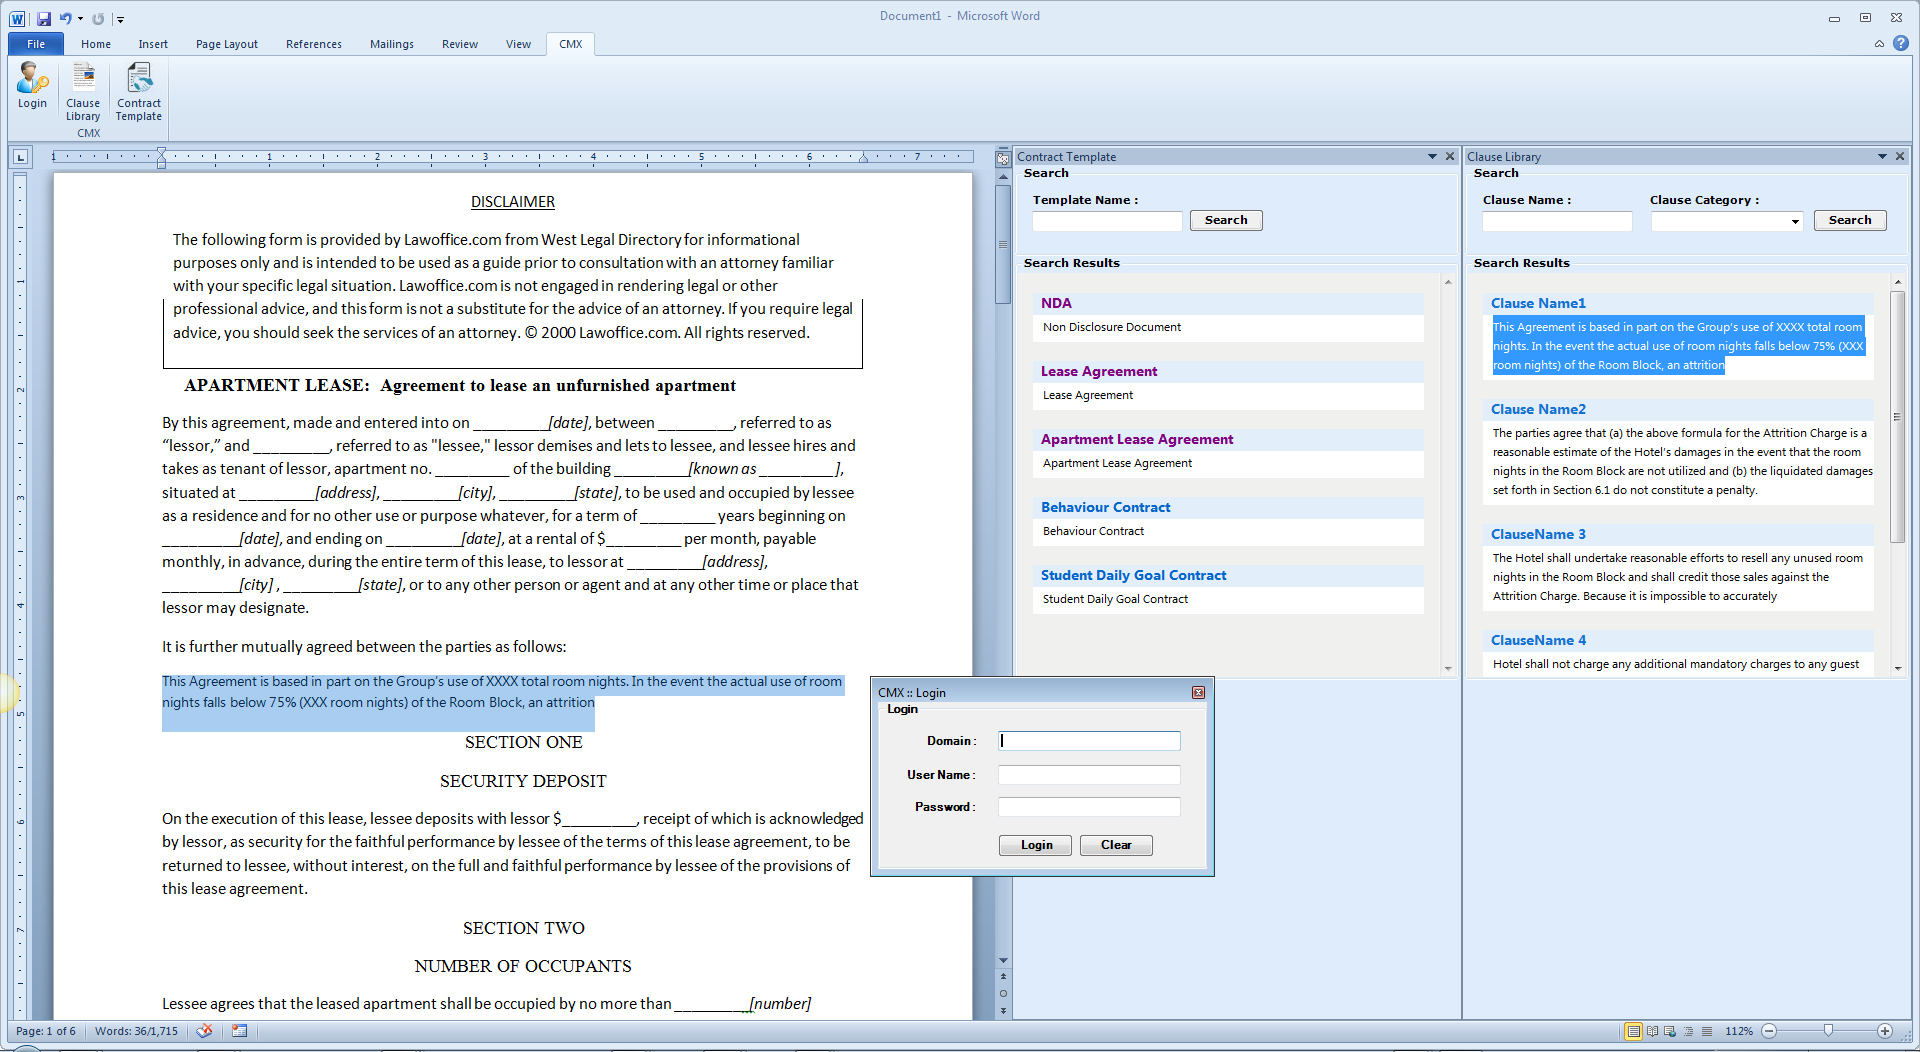 Software Agreement Contract 1 Best Practices For Quick Contract Redlining And Drafting Using